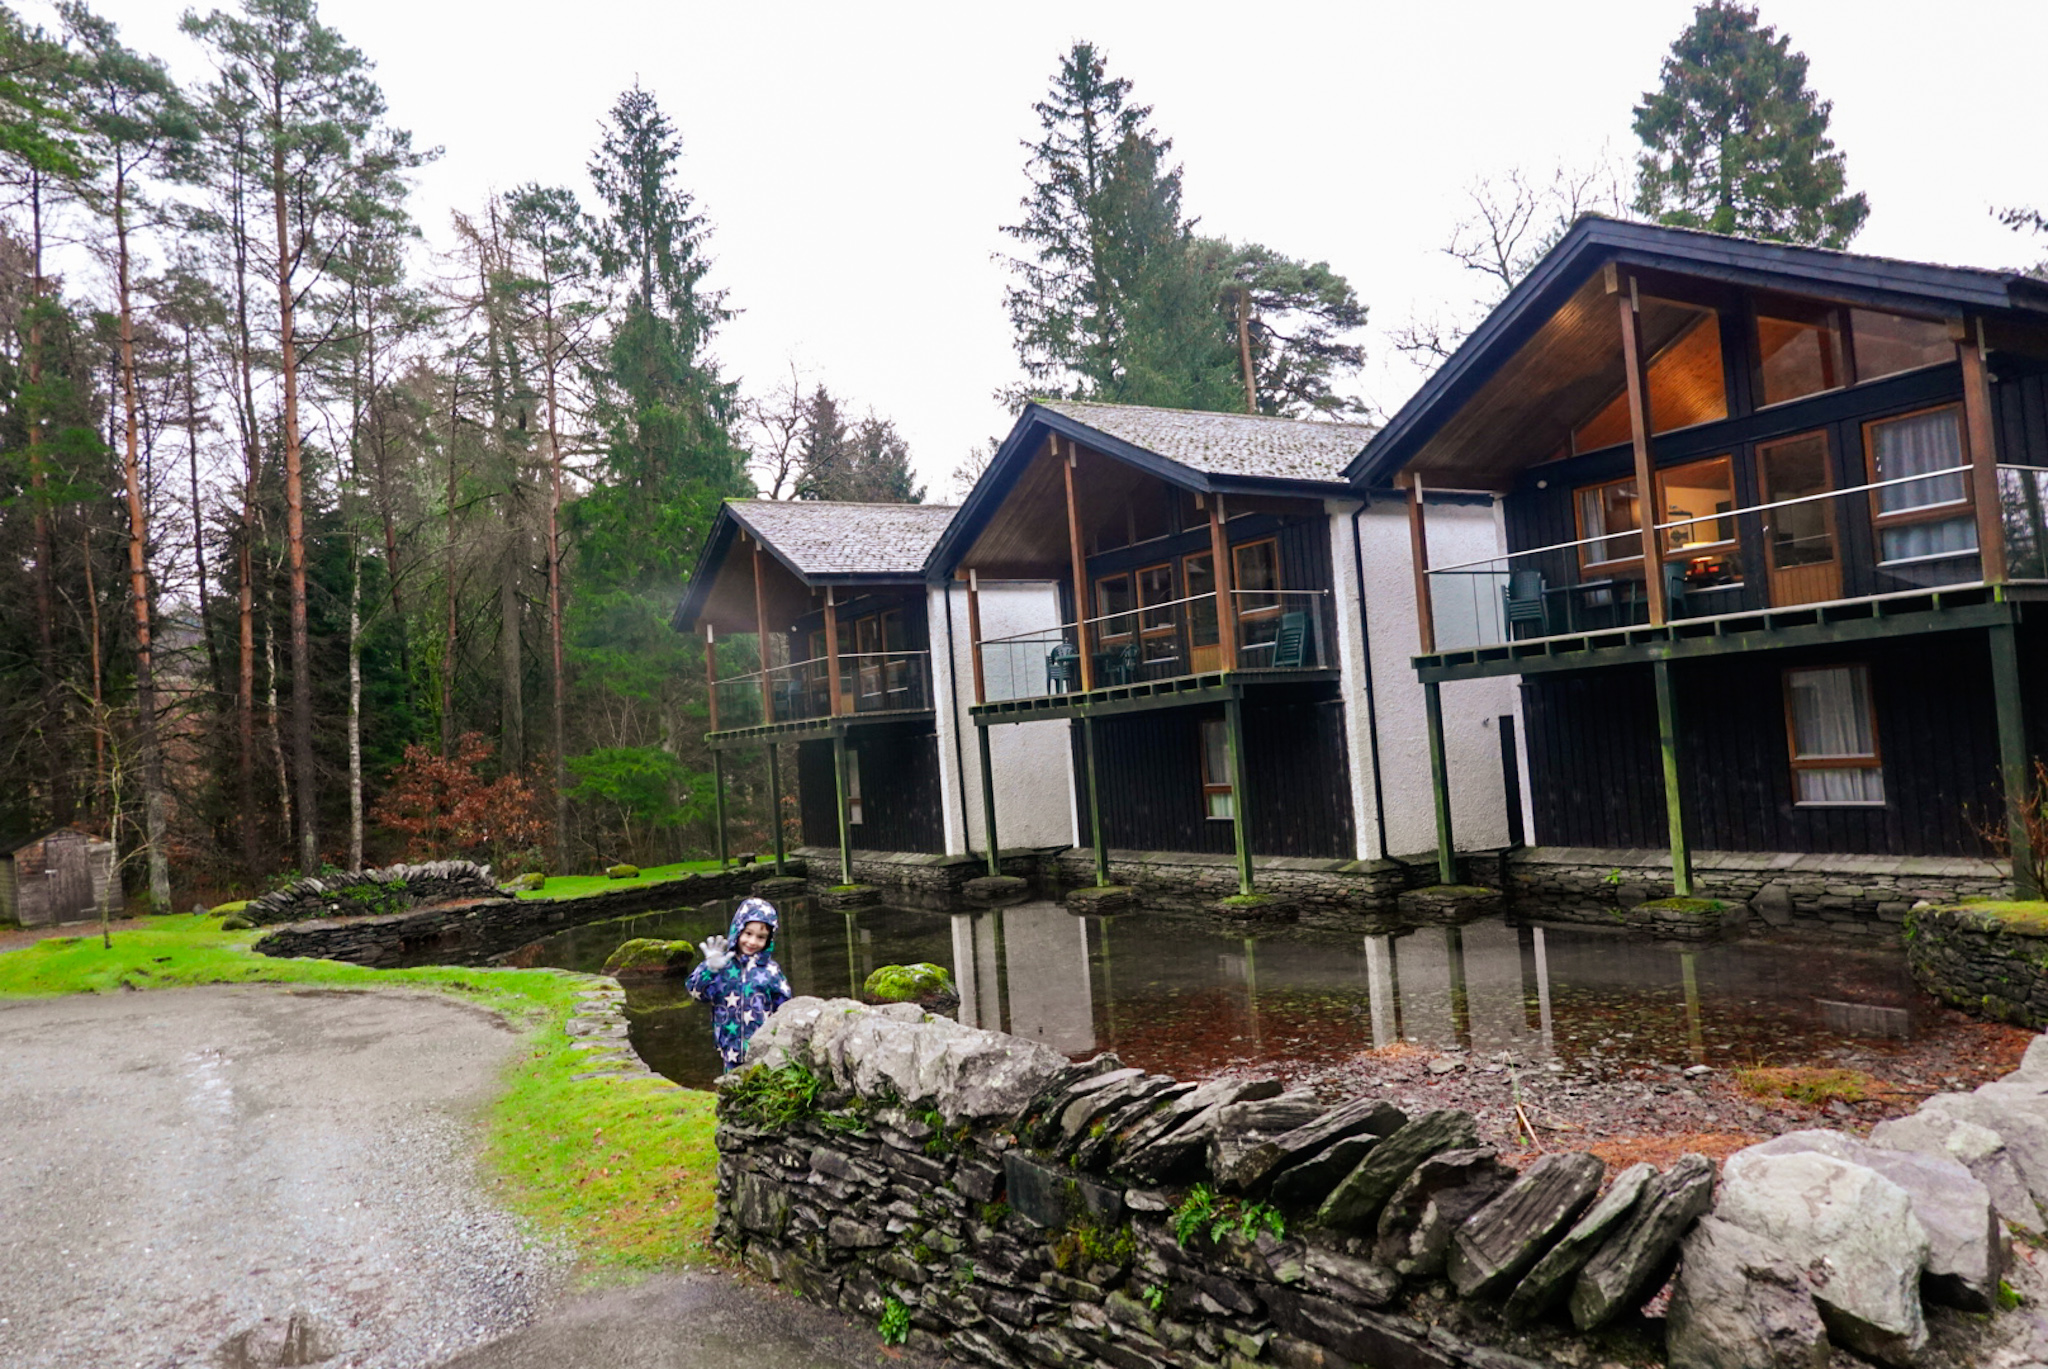 Langdale lodges